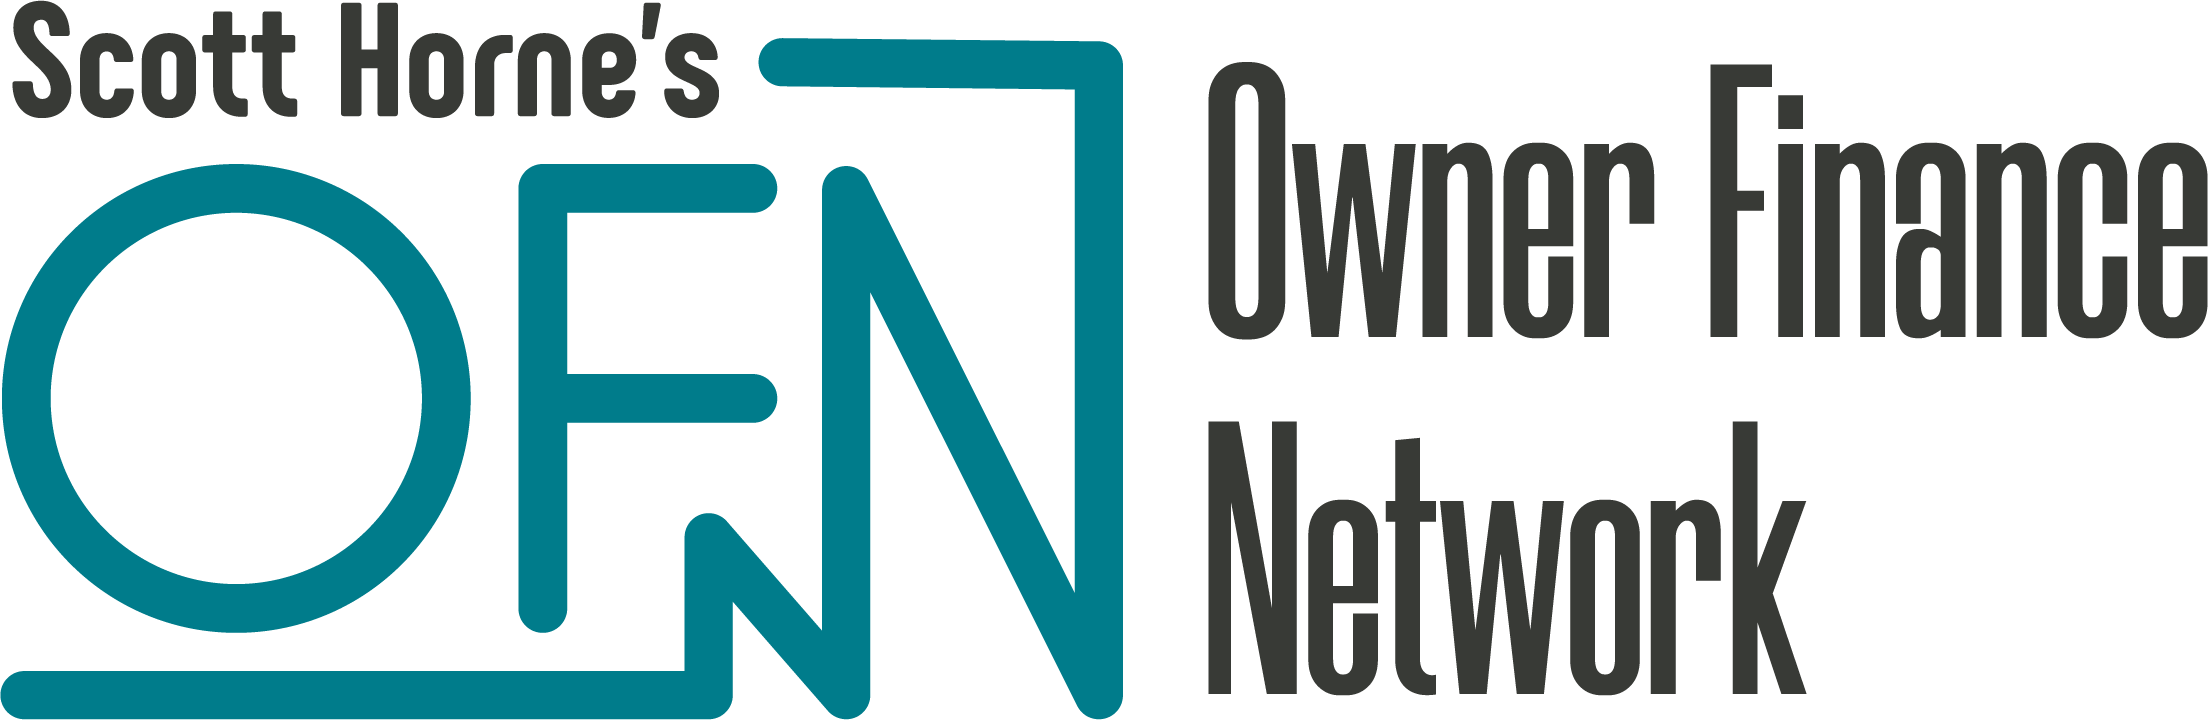 The Owner Finance Network